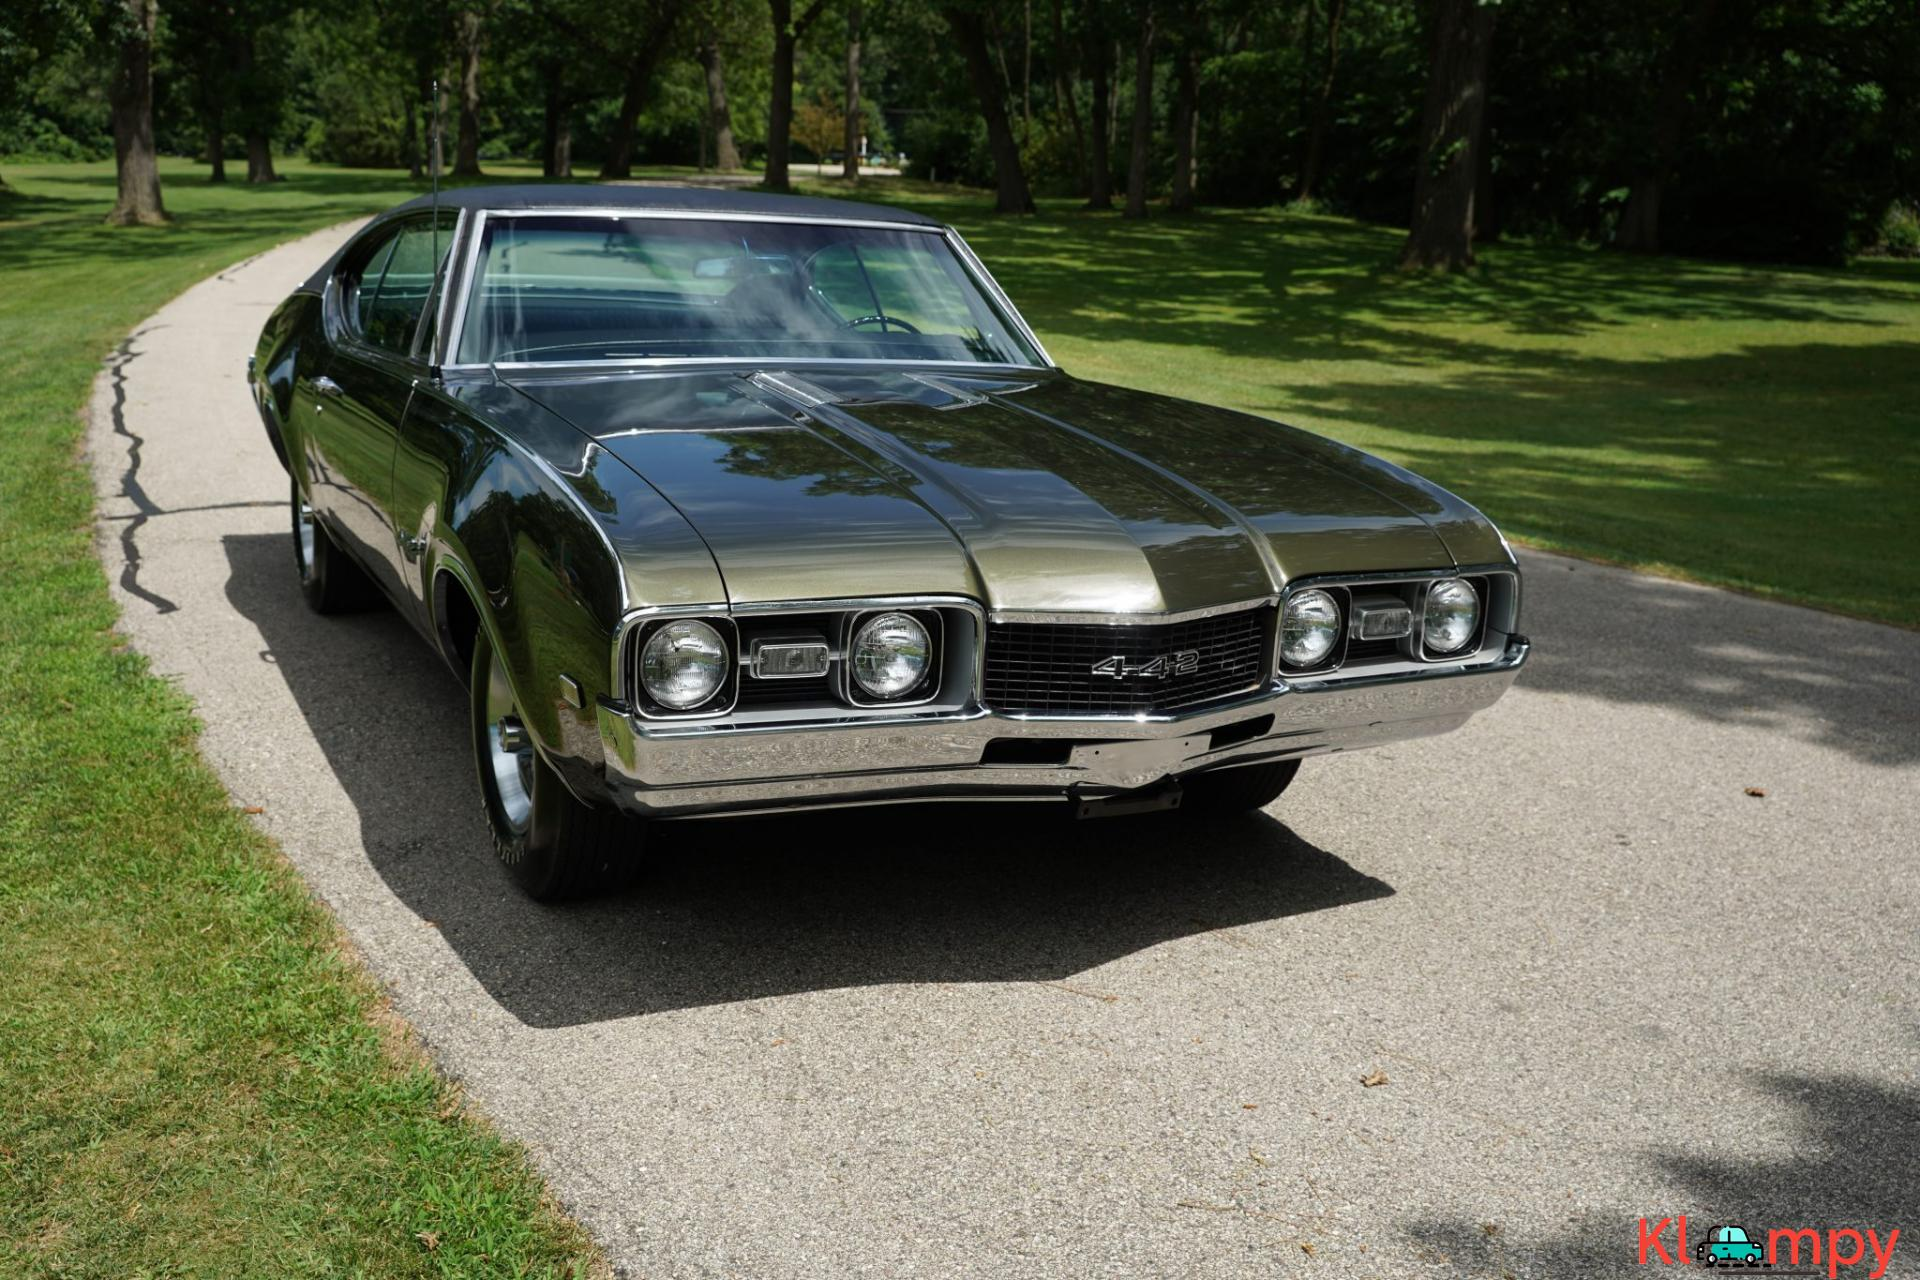 1968 Oldsmobile 442 Holiday Coupe Jade Gold - 2/28